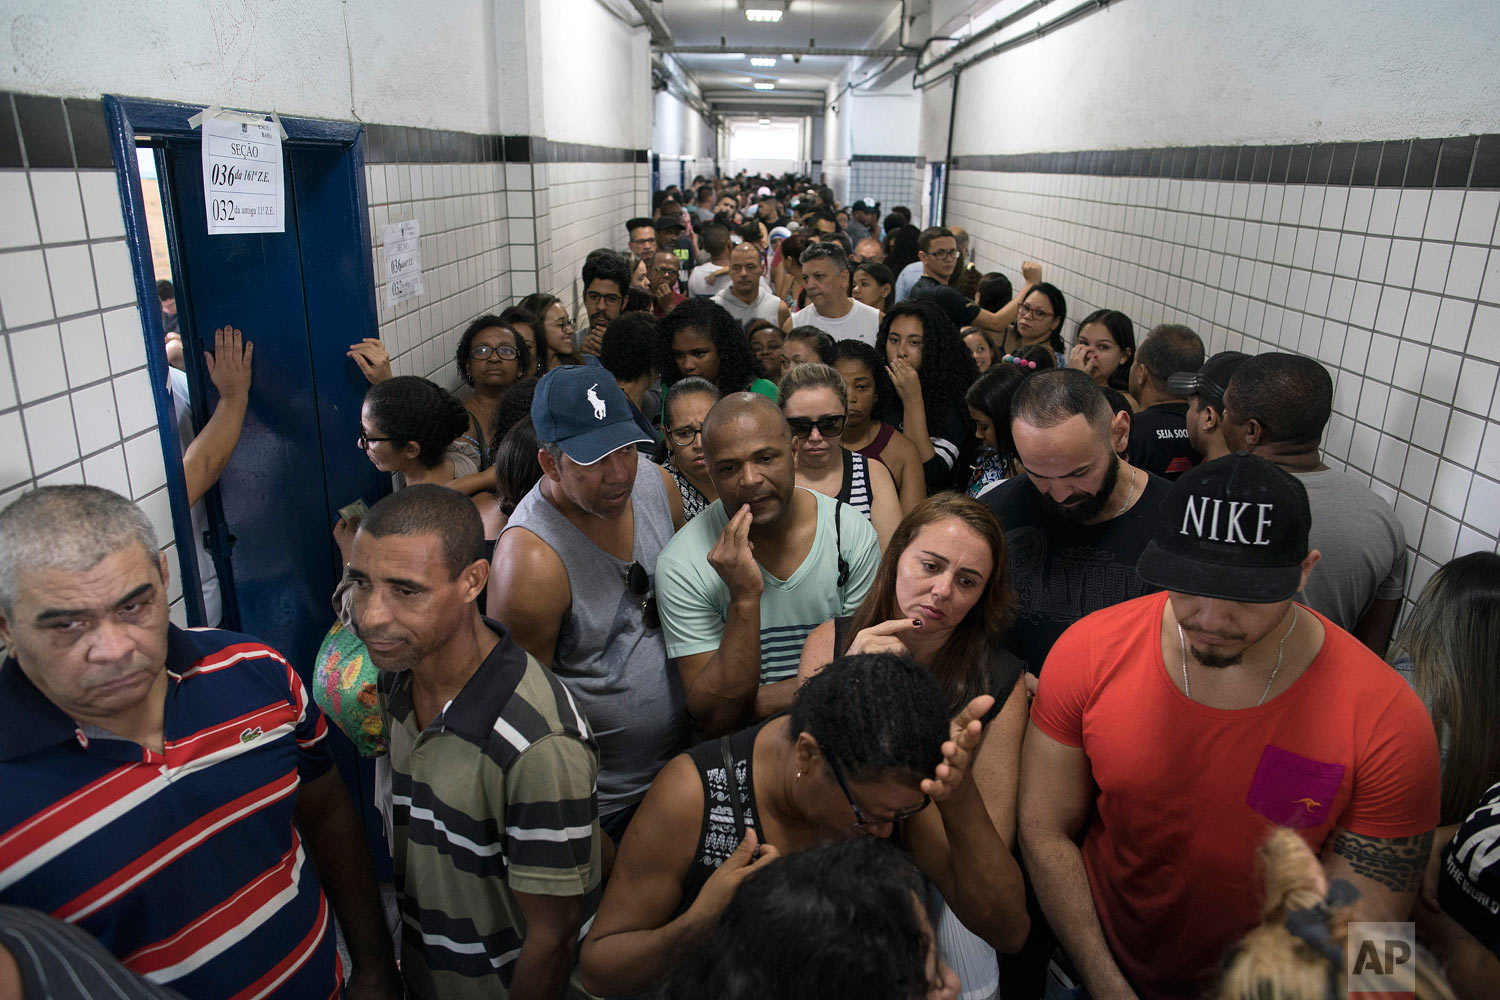 People wait in line to vote in the general election at a polling station in the Mare Complex slum in Rio de Janeiro, Brazil, Oct. 7, 2018. Brazilians choose among 13 candidates for president Sunday in one of the most unpredictable and divisive elections in decades. (AP Photo/Leo Correa)